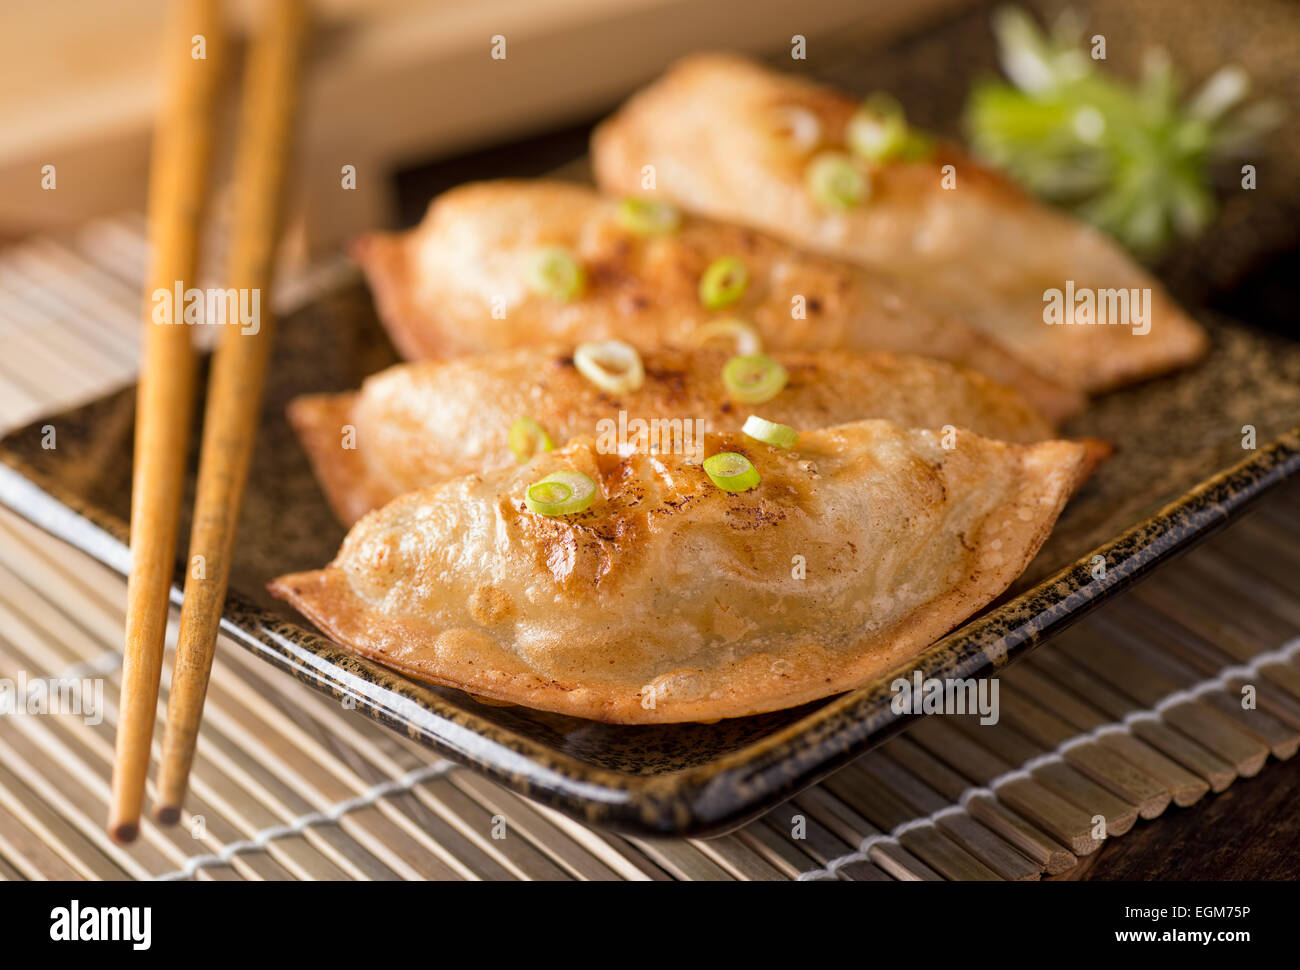 A plate of delicious asian pot stickers with scallions. - Stock Image